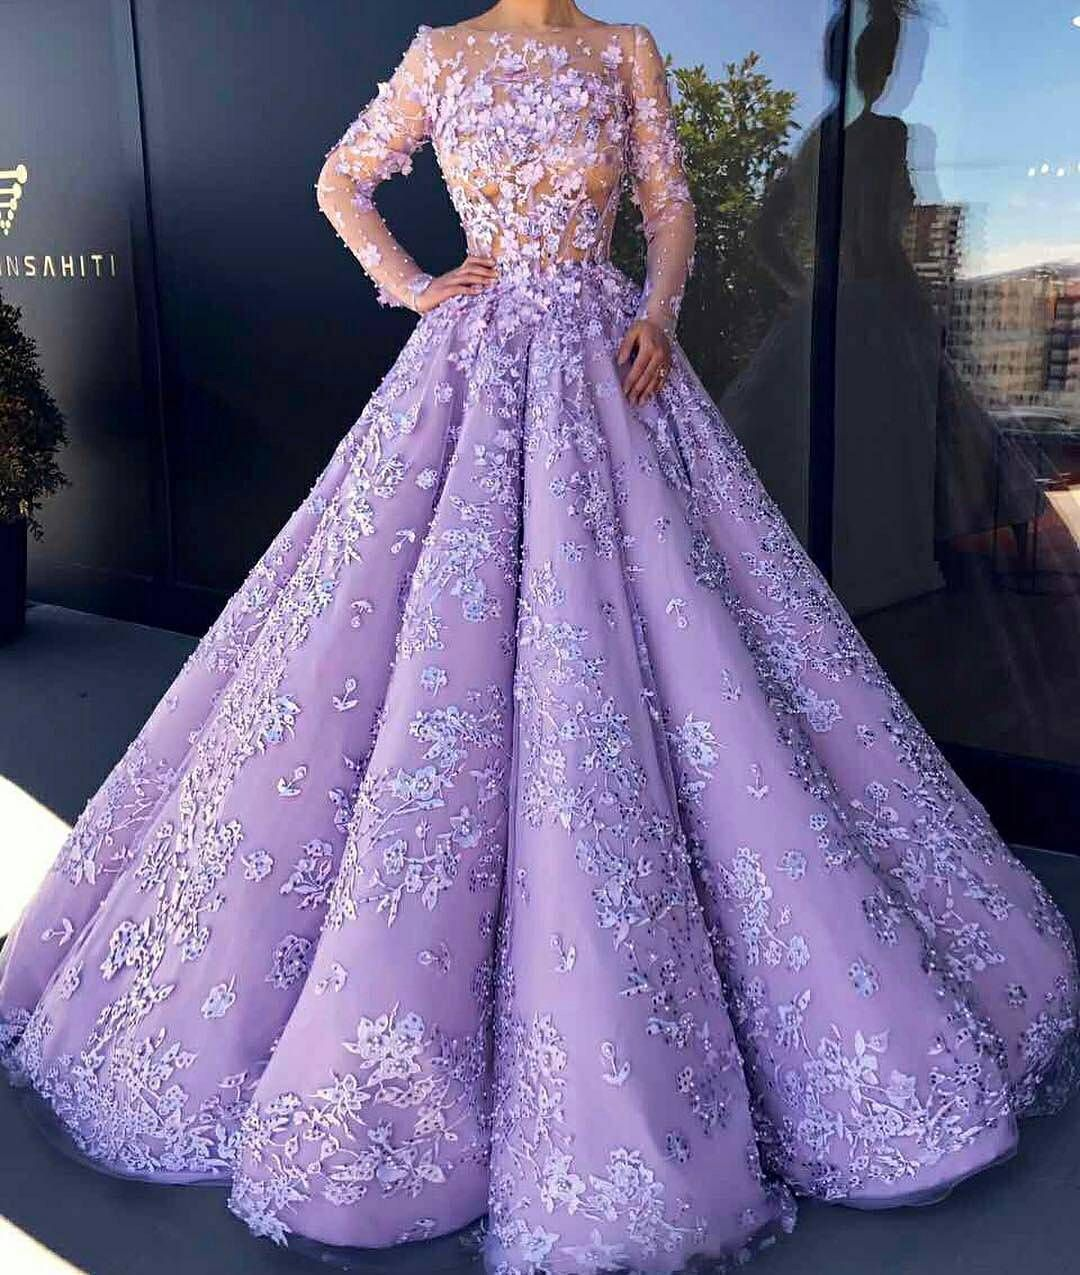 Stylish ootd girl dress fashion prom pinterest dress